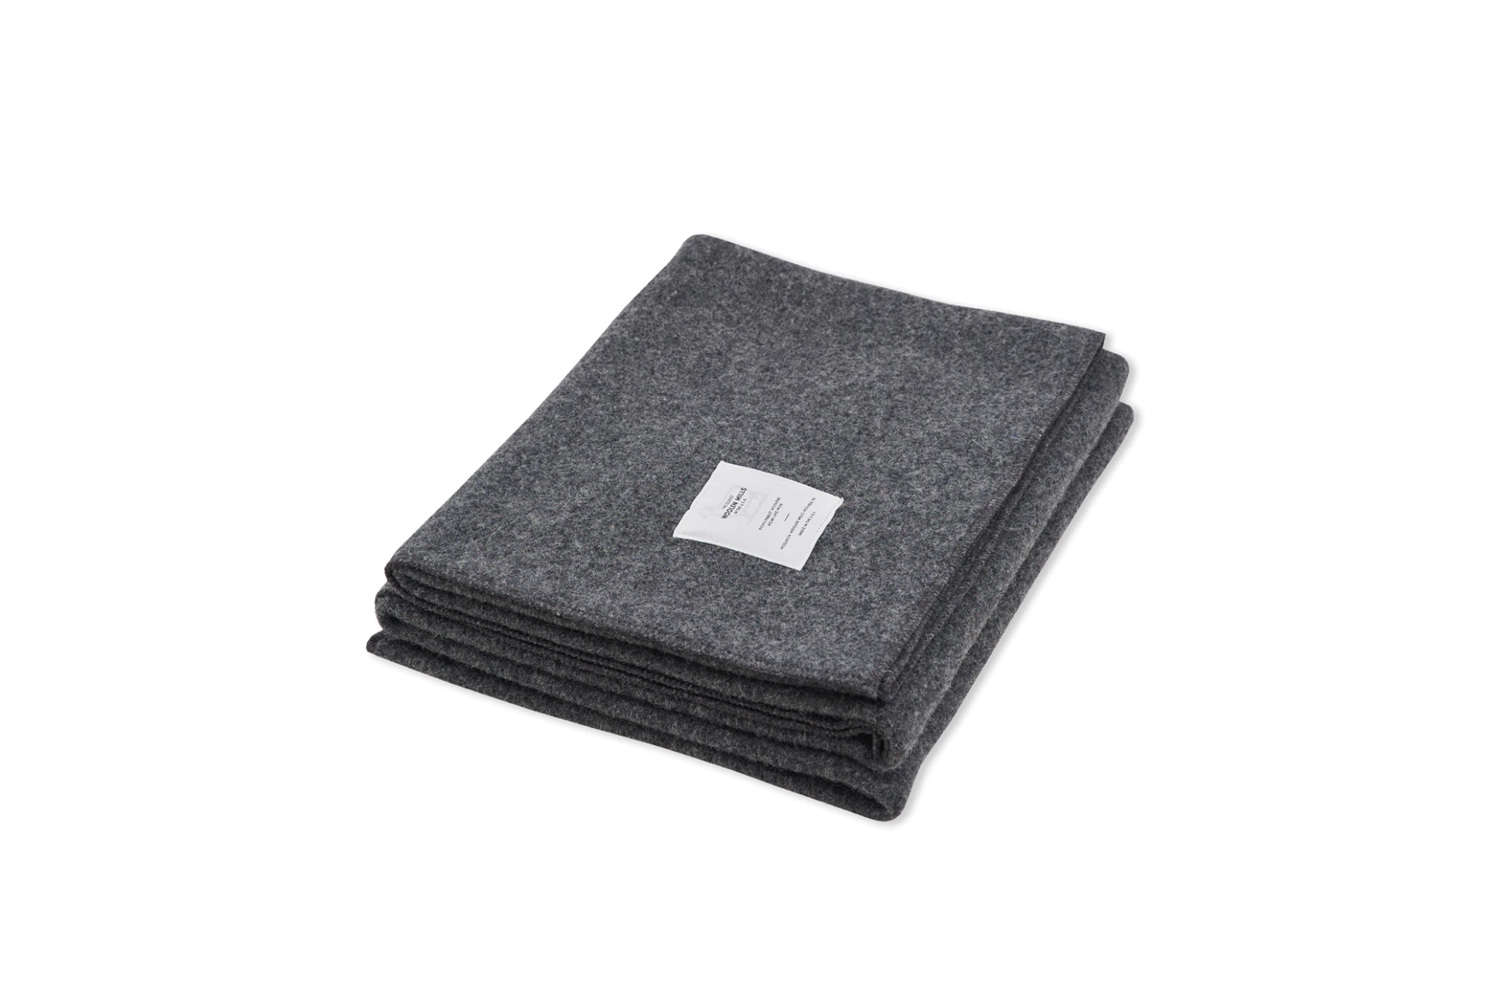 The classic Woolrich Atlas Blanket comes in a range of dark heathered colors; $loading=